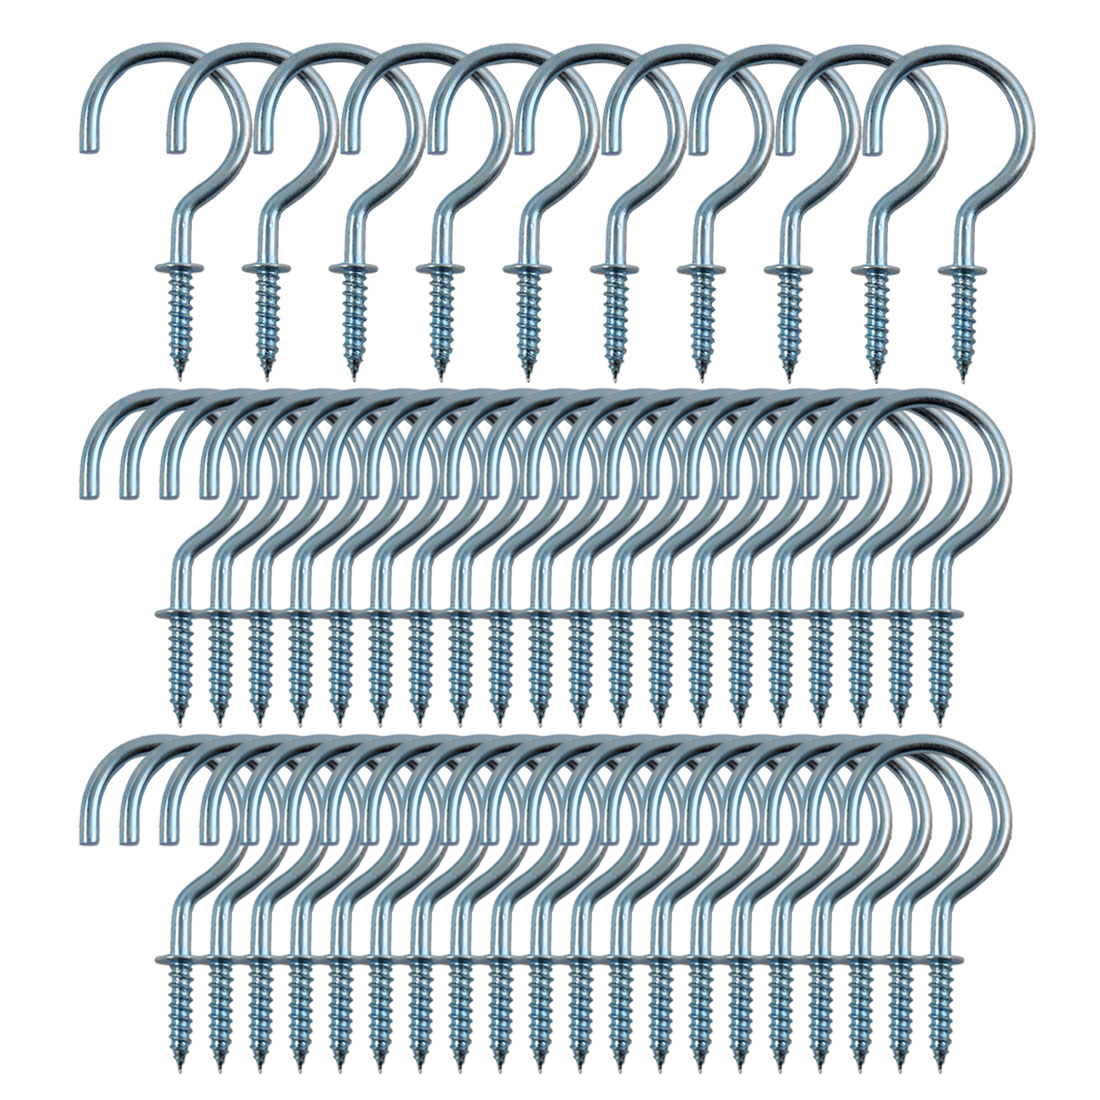 50pcs Cup Ceiling Hooks 1-1/2 Inch Zinc Plating Screw Holder Blue